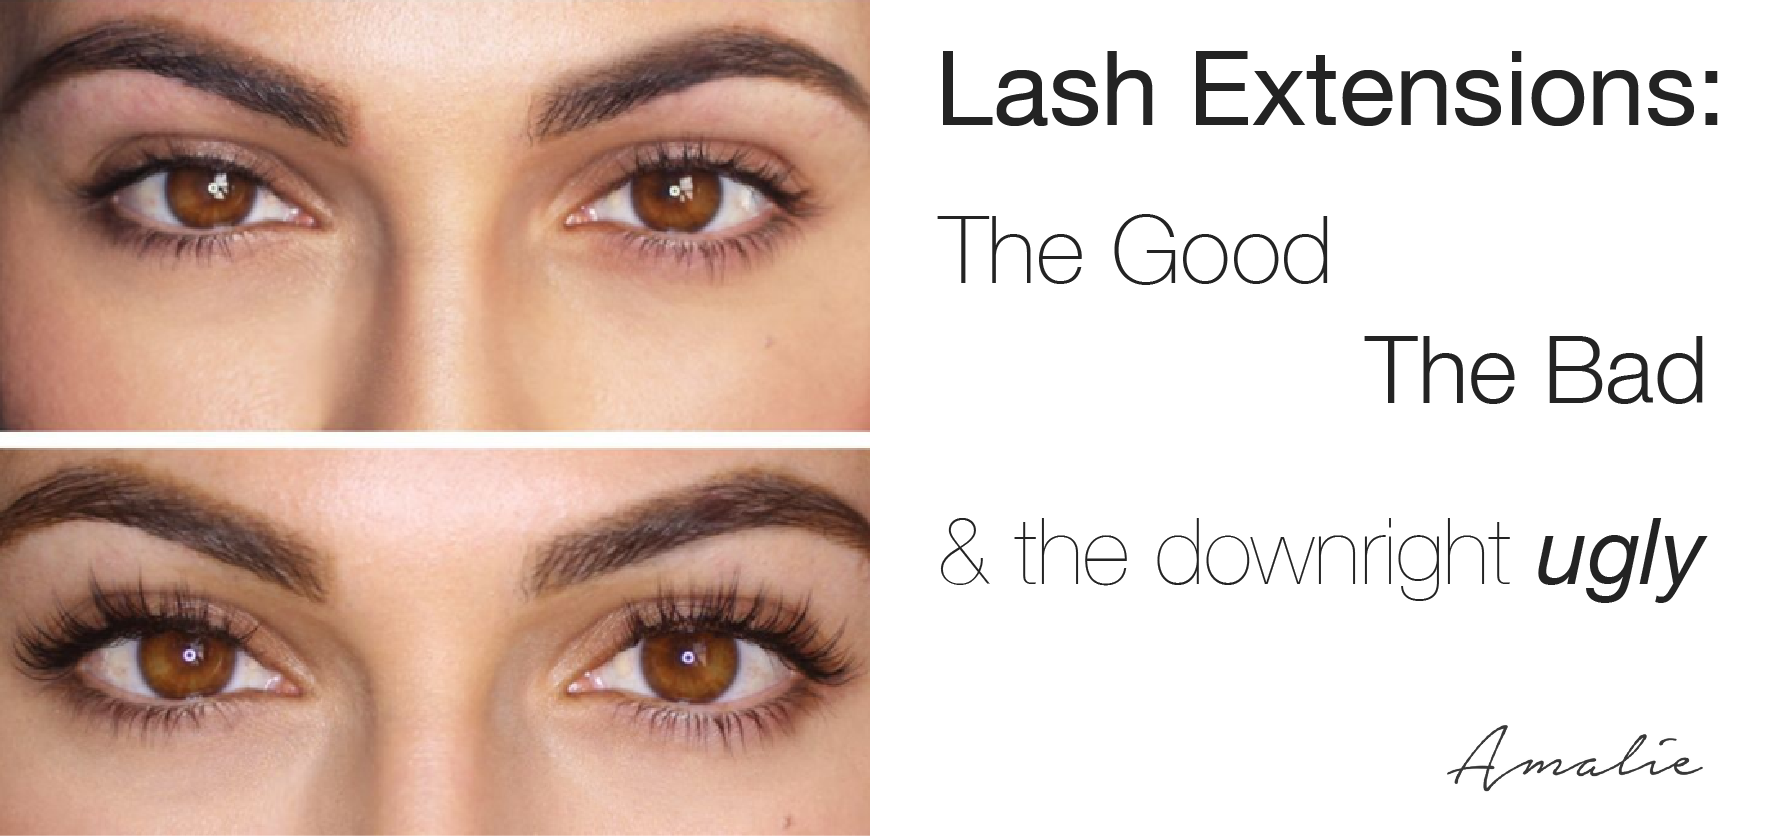 Mascara remover for eyelash extensions